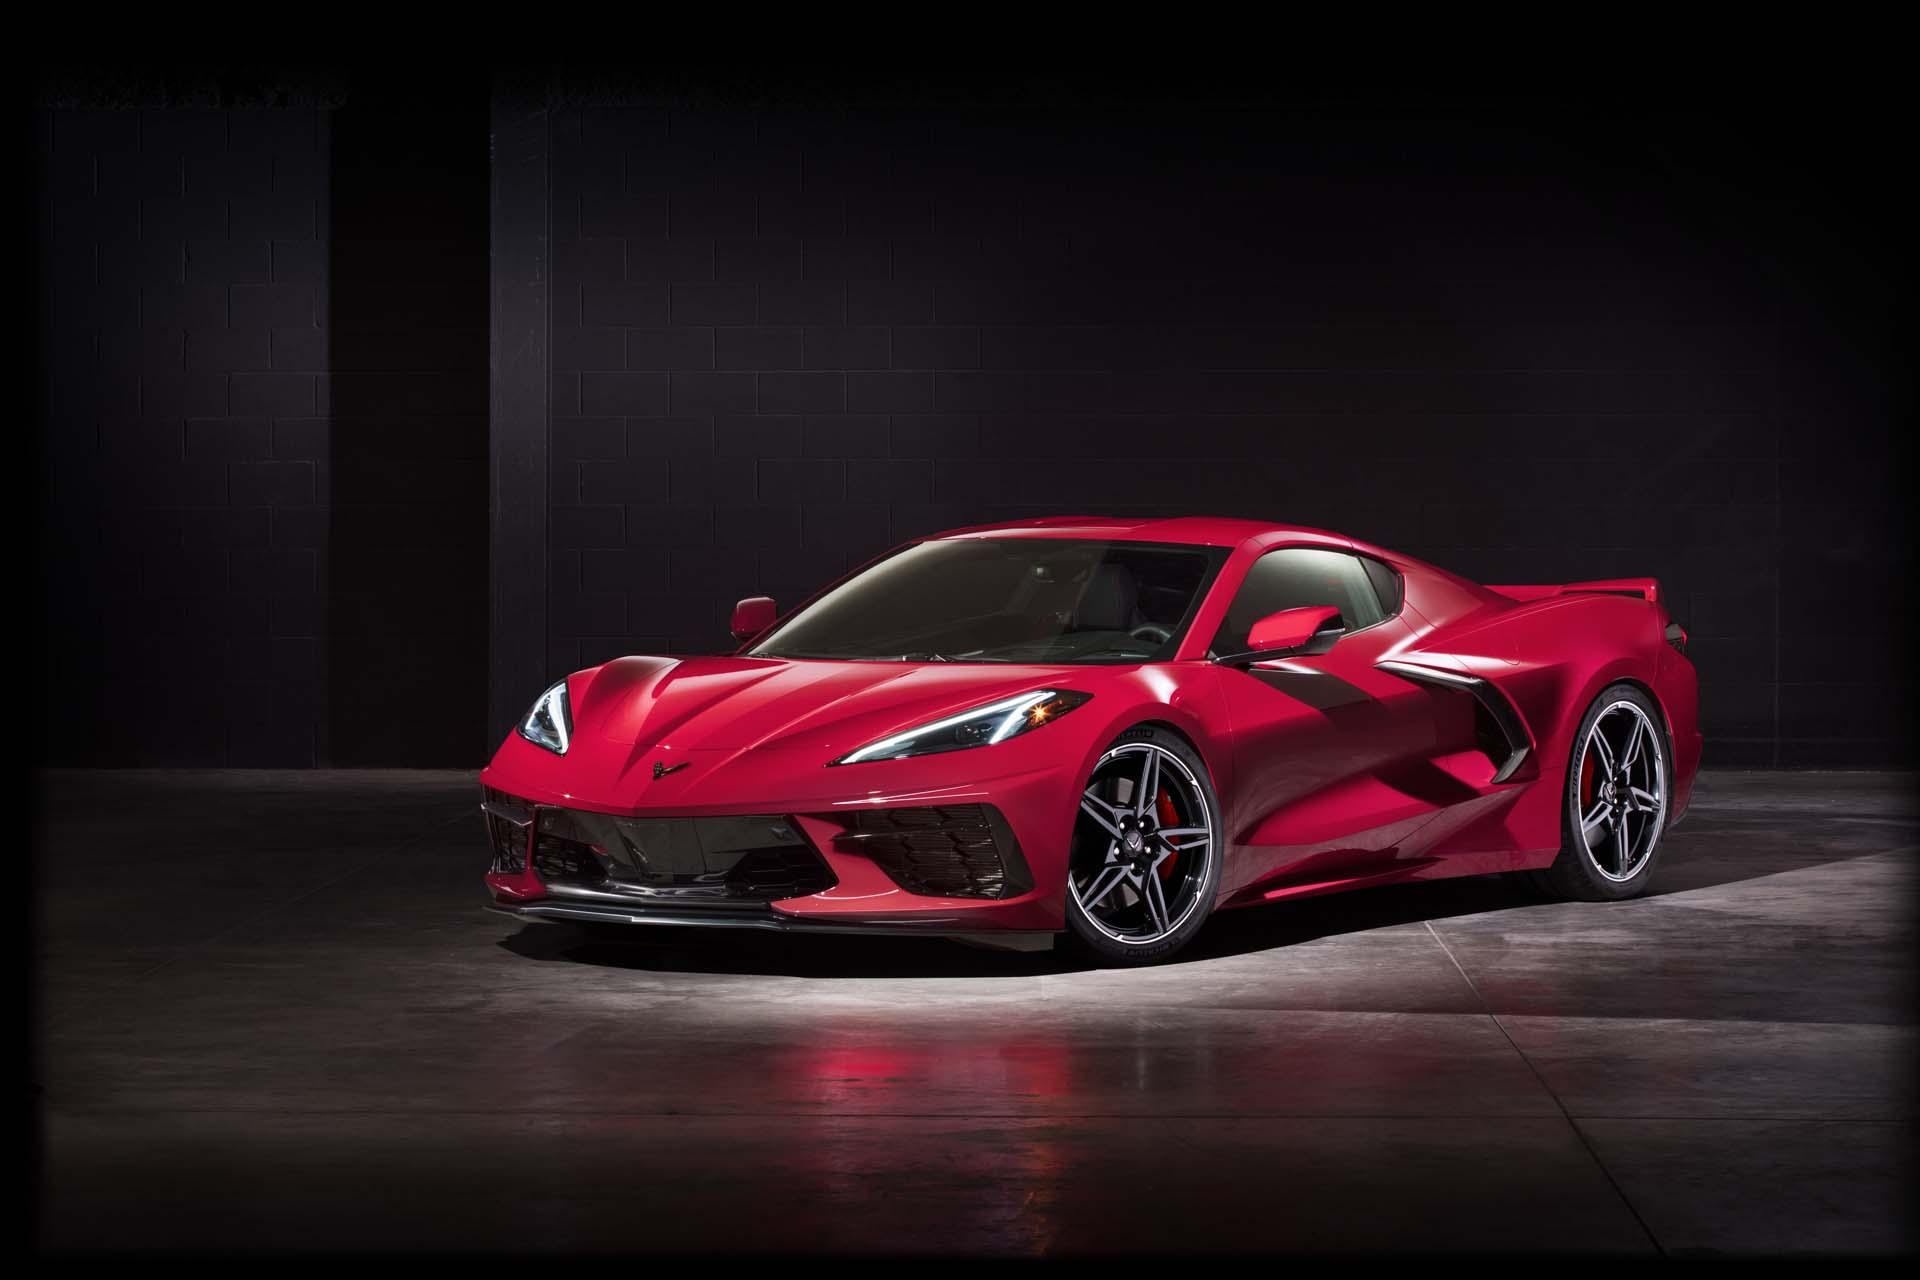 Chevrolet Corvette Stingray Z51 2020 Wallpapers 1920x1280